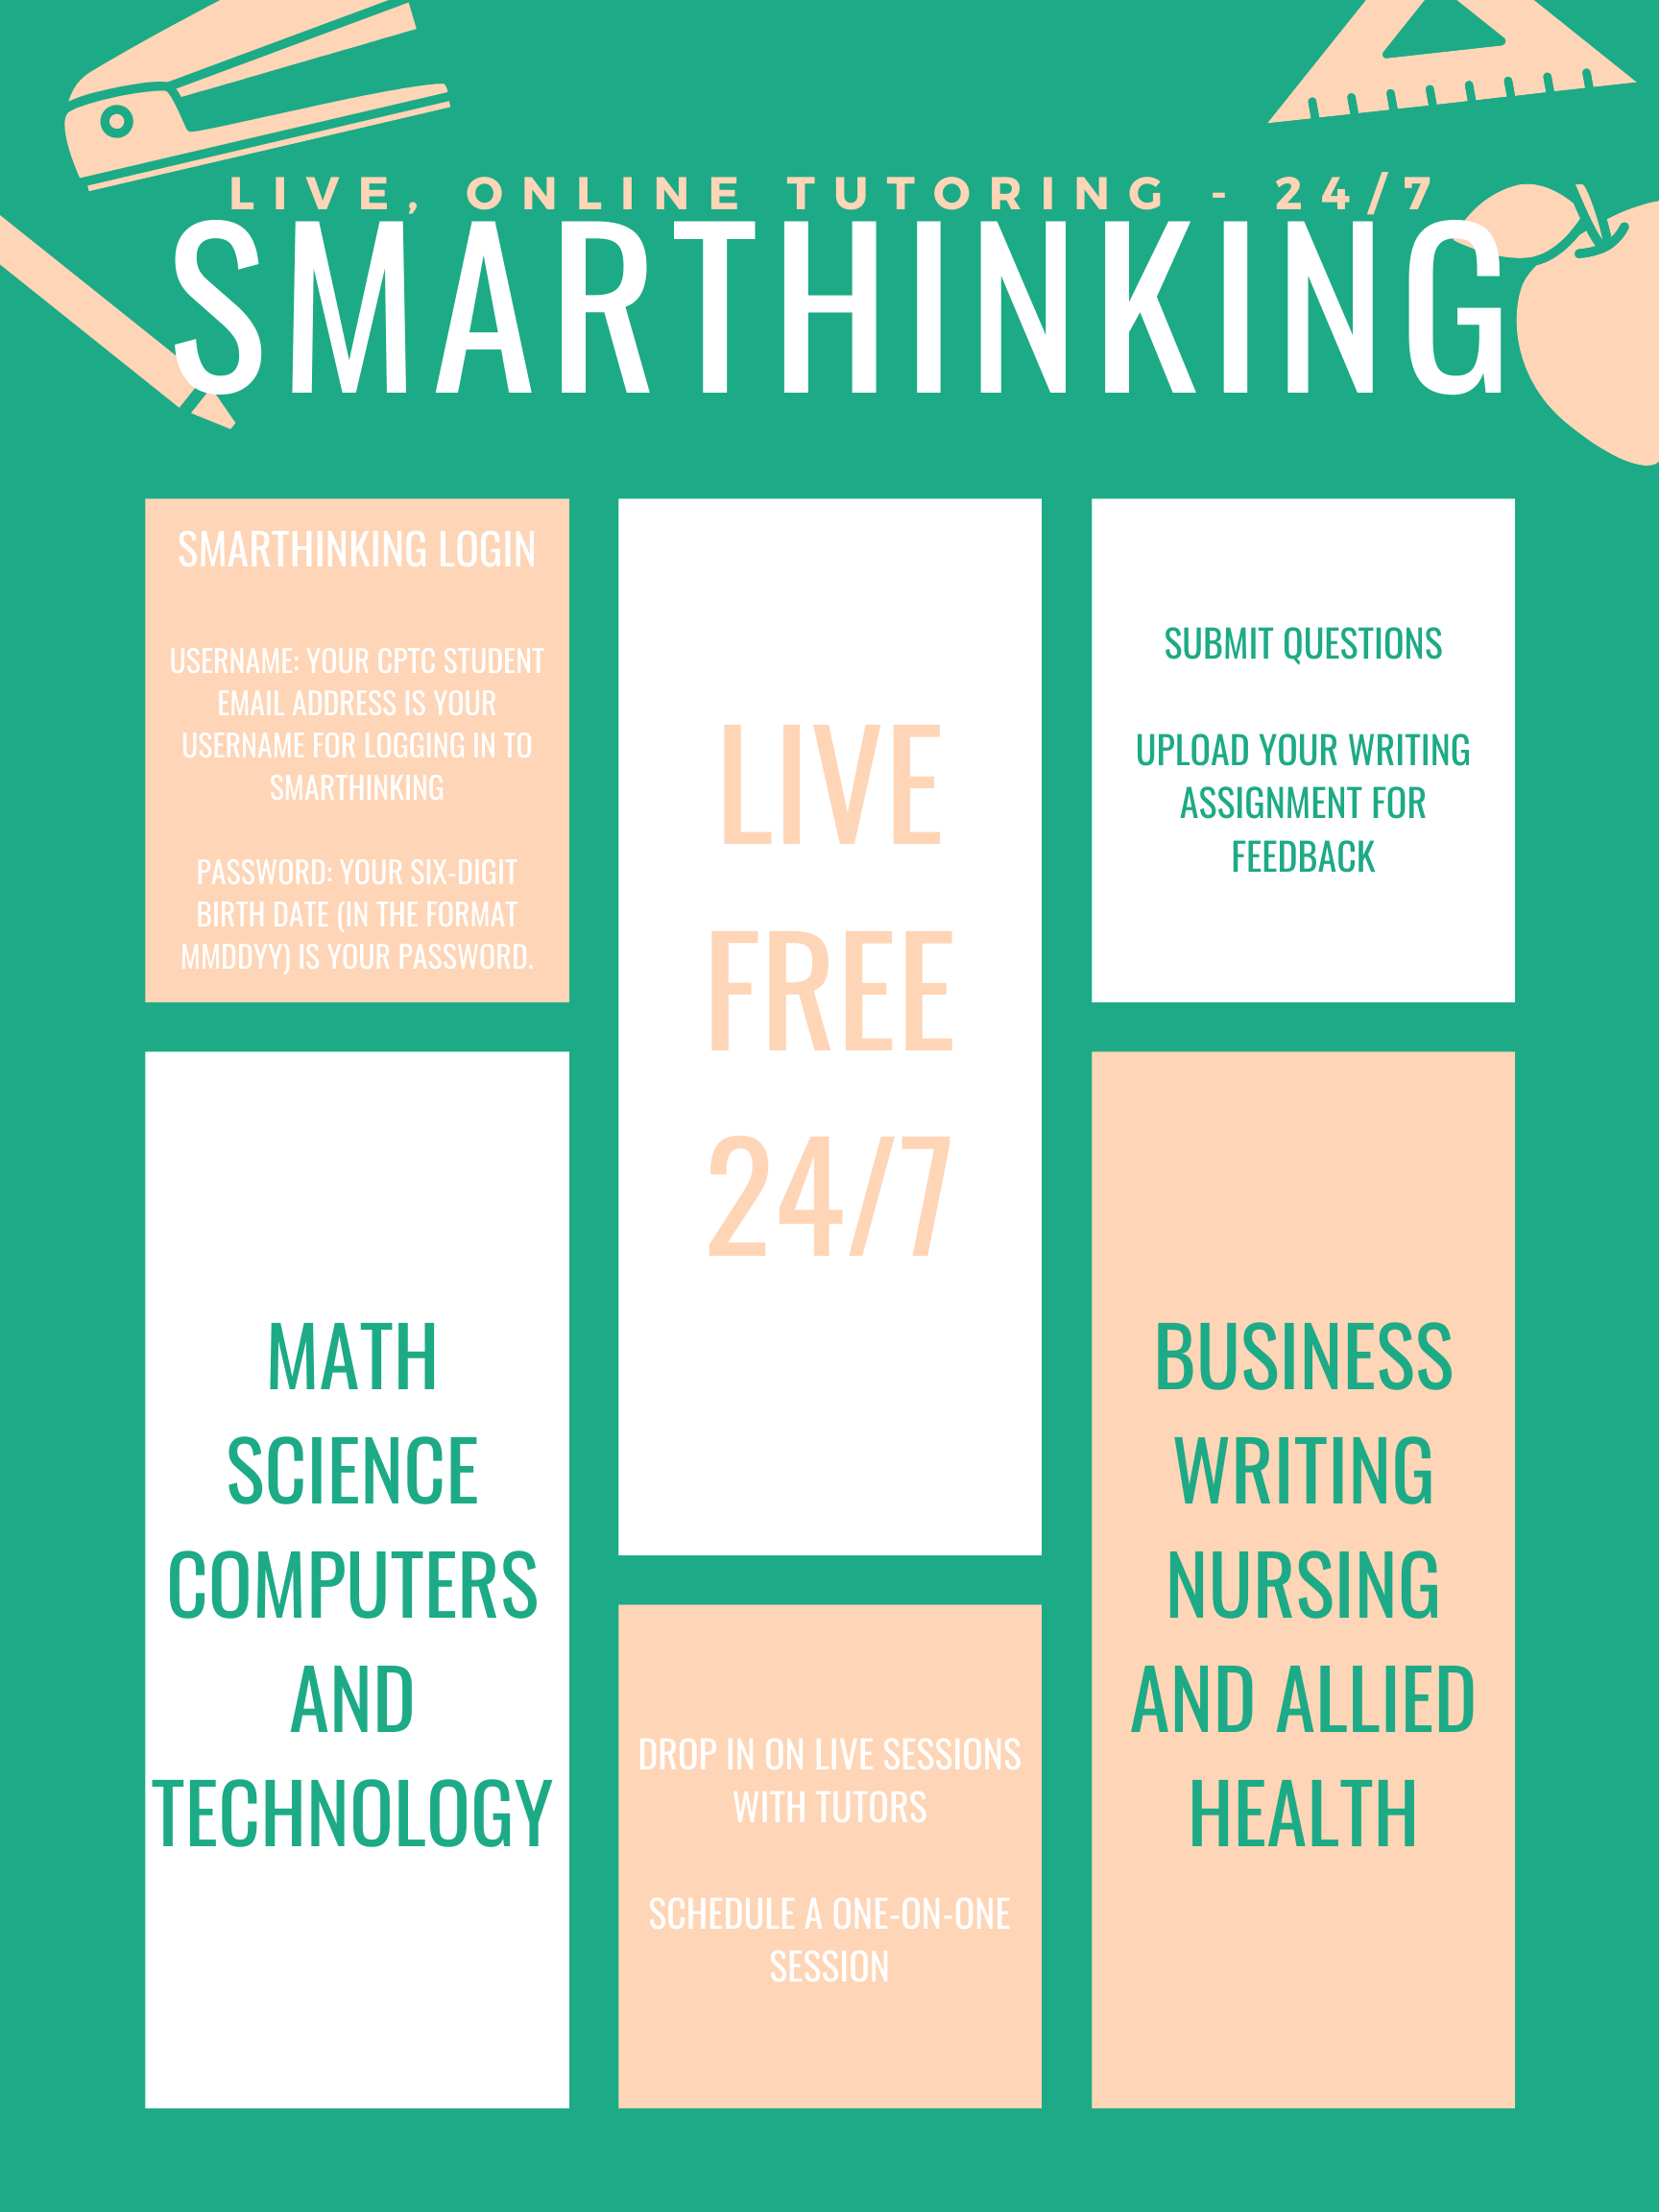 Poster for Smarthinking describing the 24/7 free tutoring service offered to CPTC students